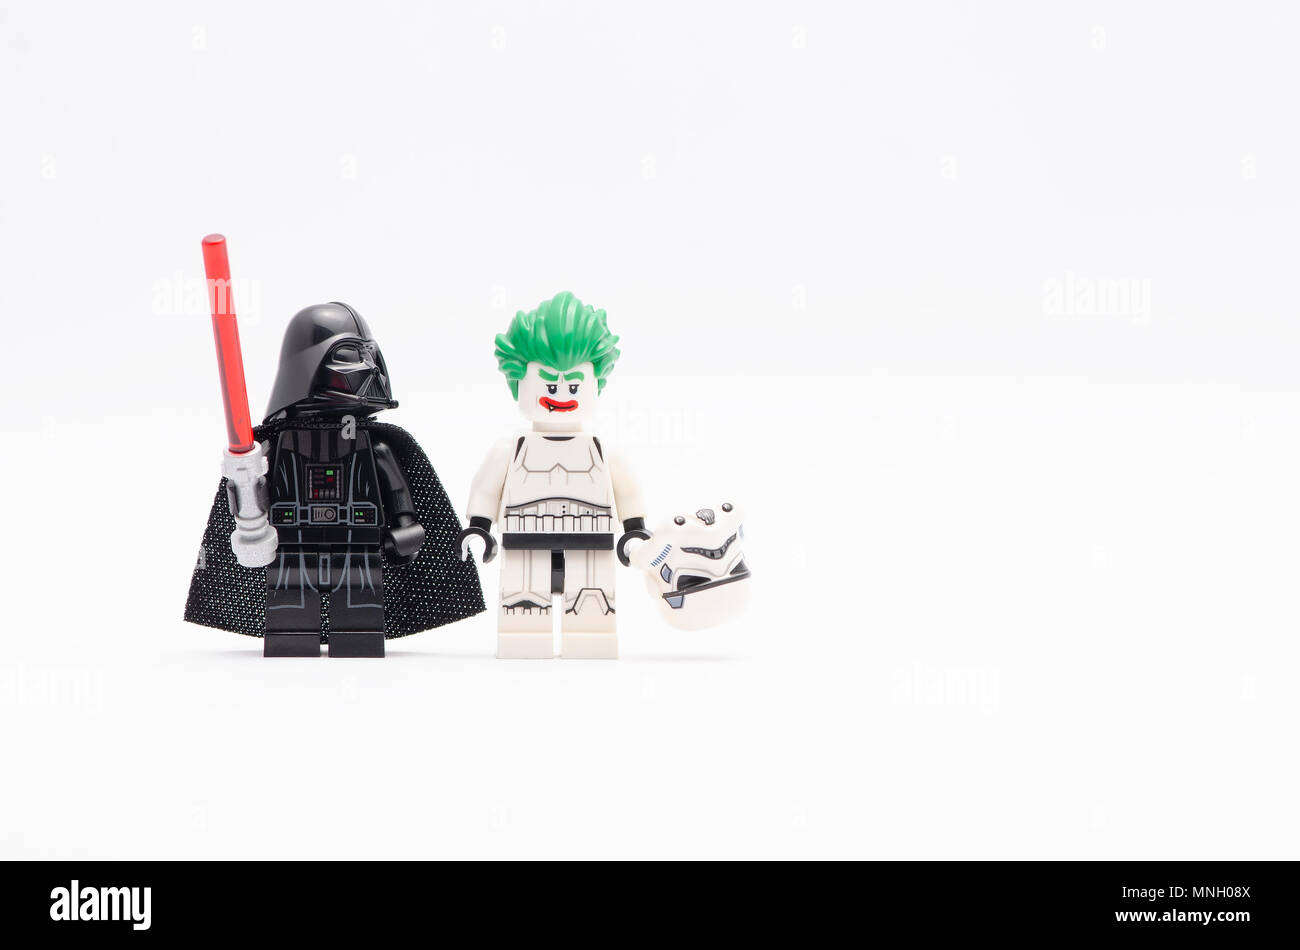 mini figure of  darth vader watching  joker in storm trooper suit . Lego minifigures are manufactured by The Lego Group. - Stock Image